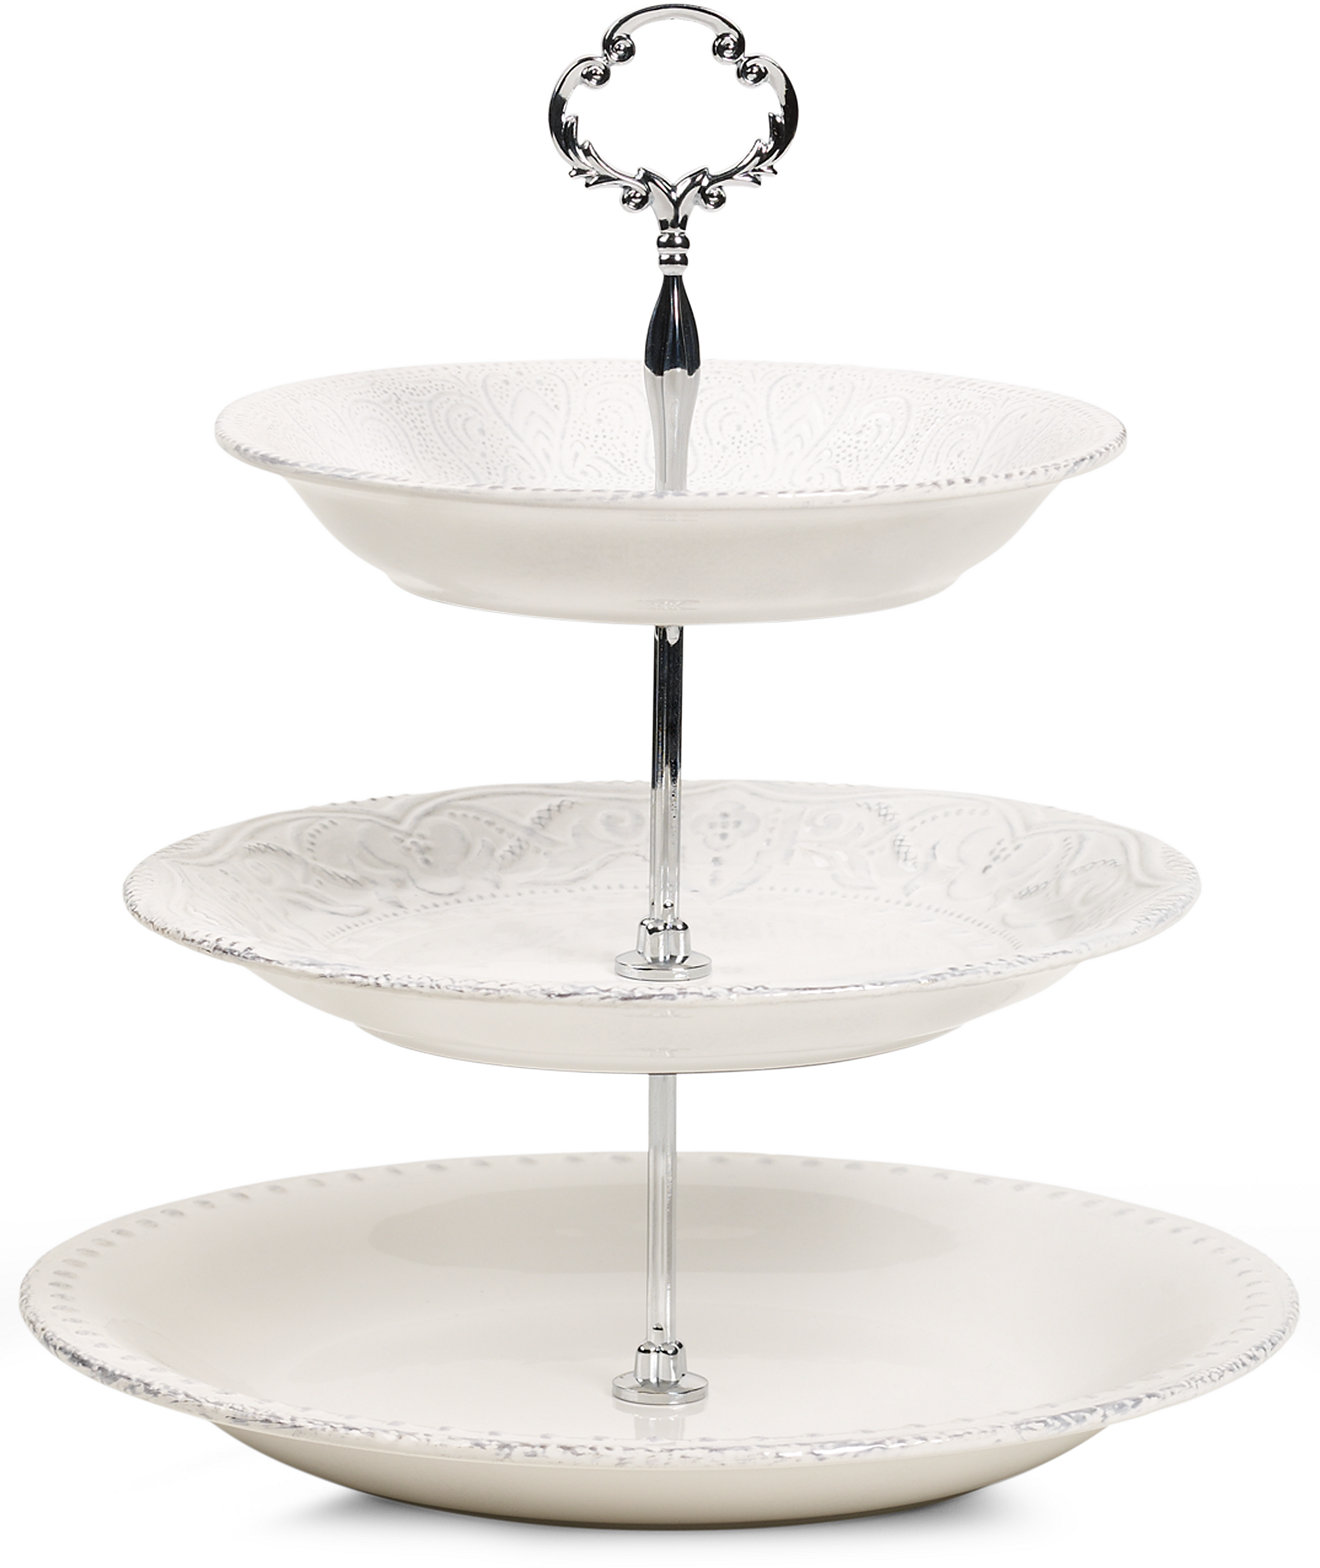 Maison Versailles Blanc 3 Tiered Server - Serveware - Dining & Entertaining - Macy's